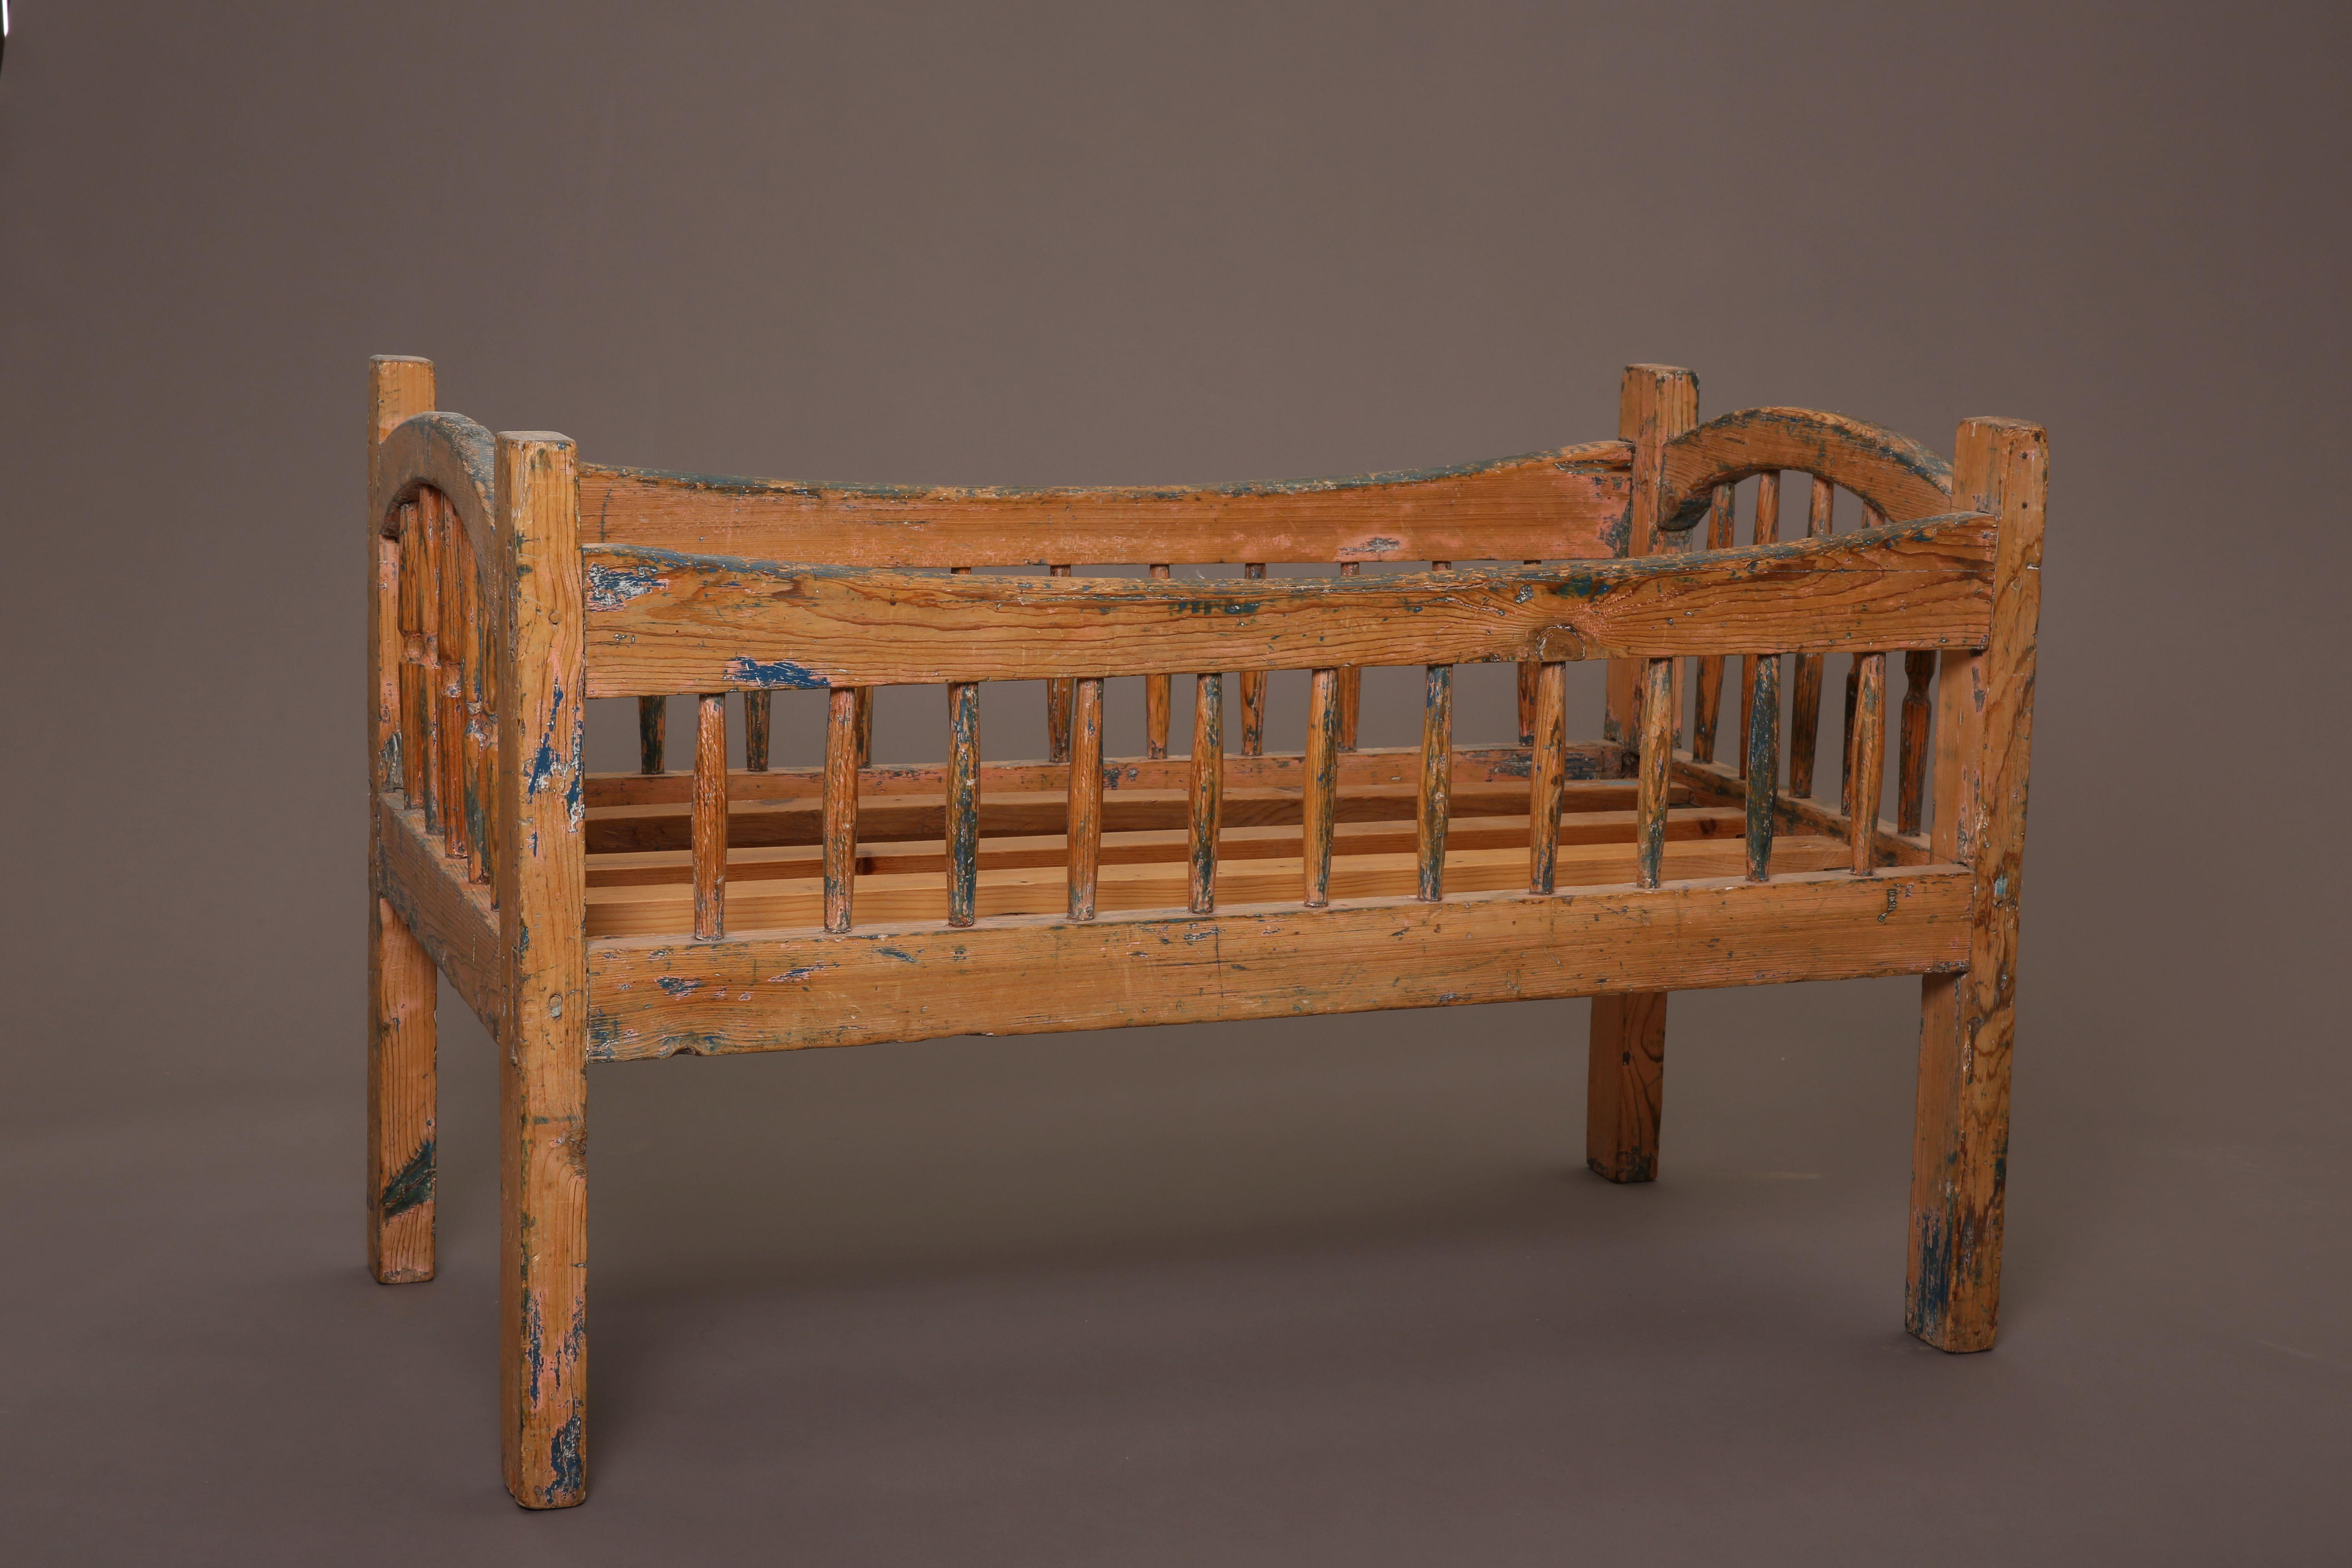 New Mexico, Painted Children's Crib, ca. 1900